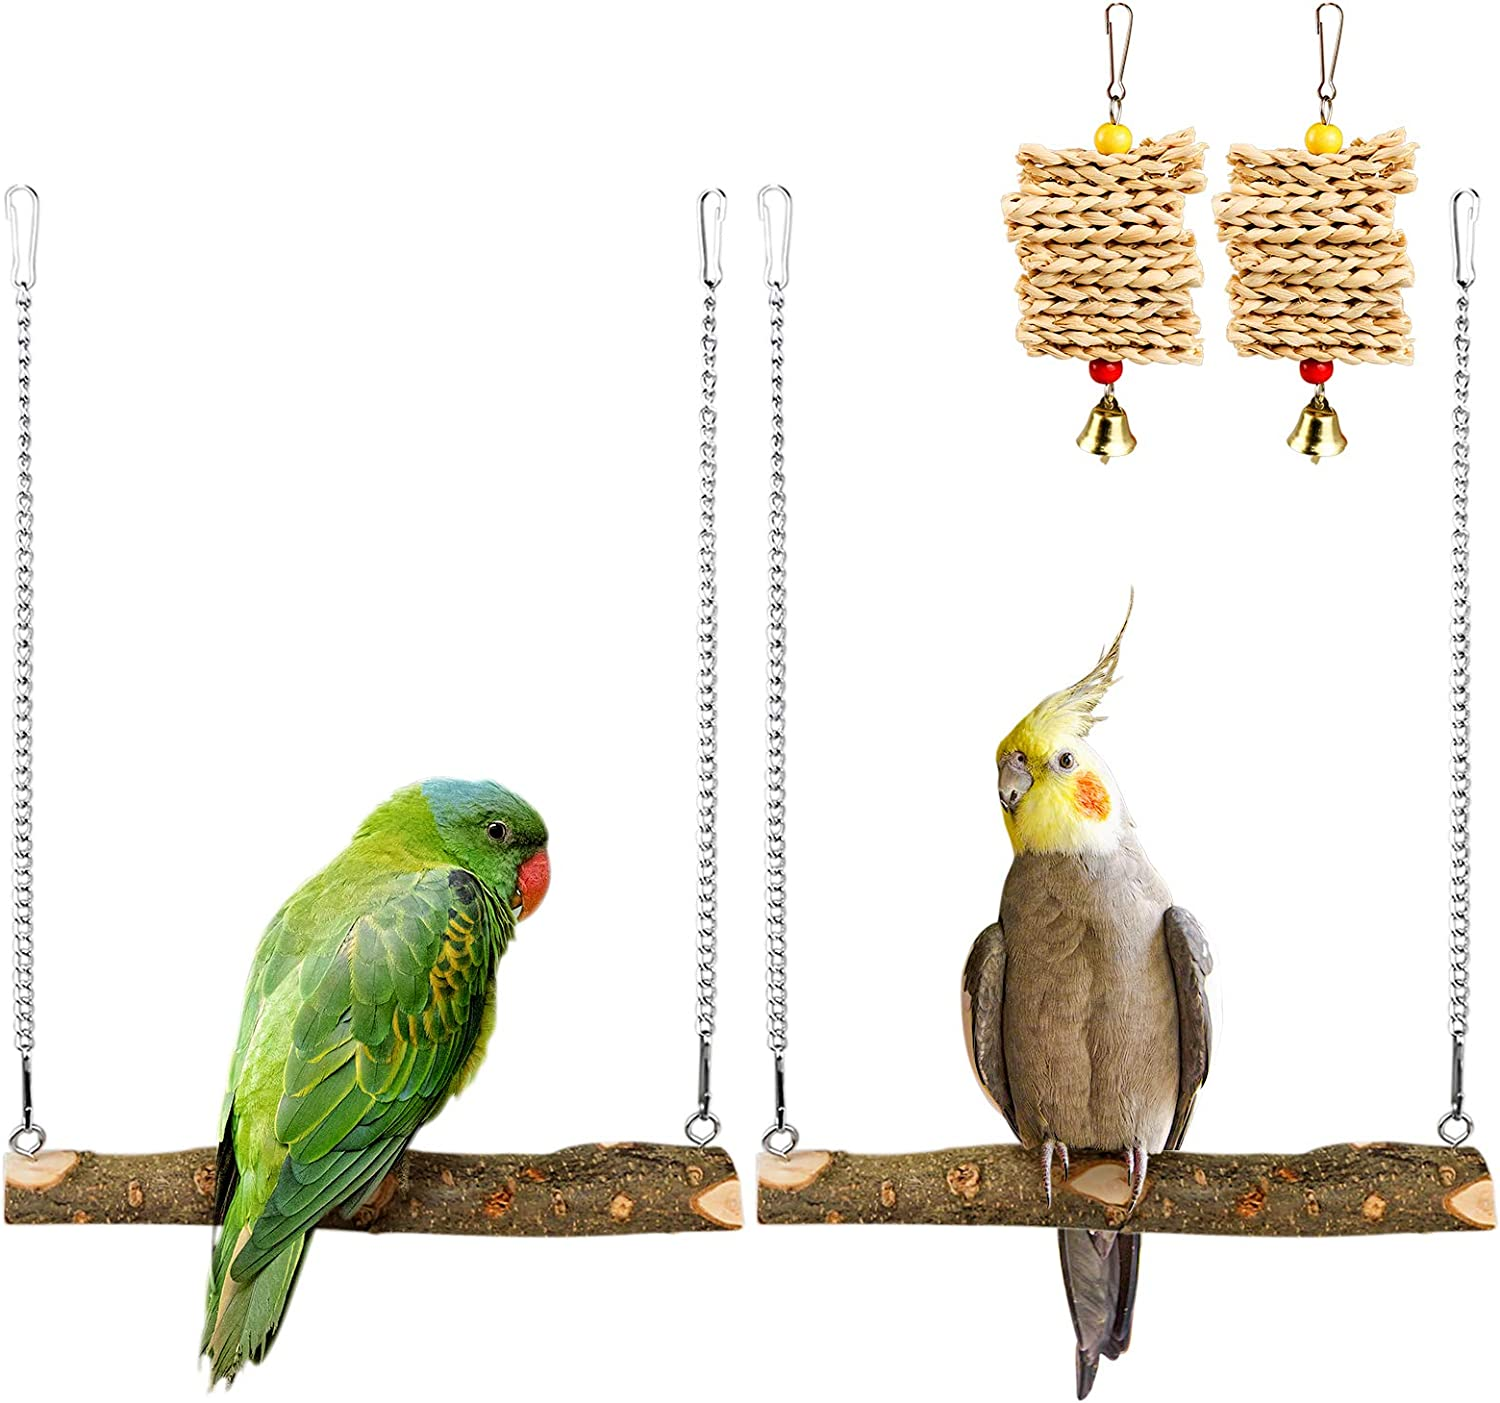 Roundler Pet Bird Swing, Parrot Cage Toys, Natural Wooden Swing Toys for Parakeet Cockatoo Cockatiel Conure Lovebirds Canaries Little Macaw African Parrot …